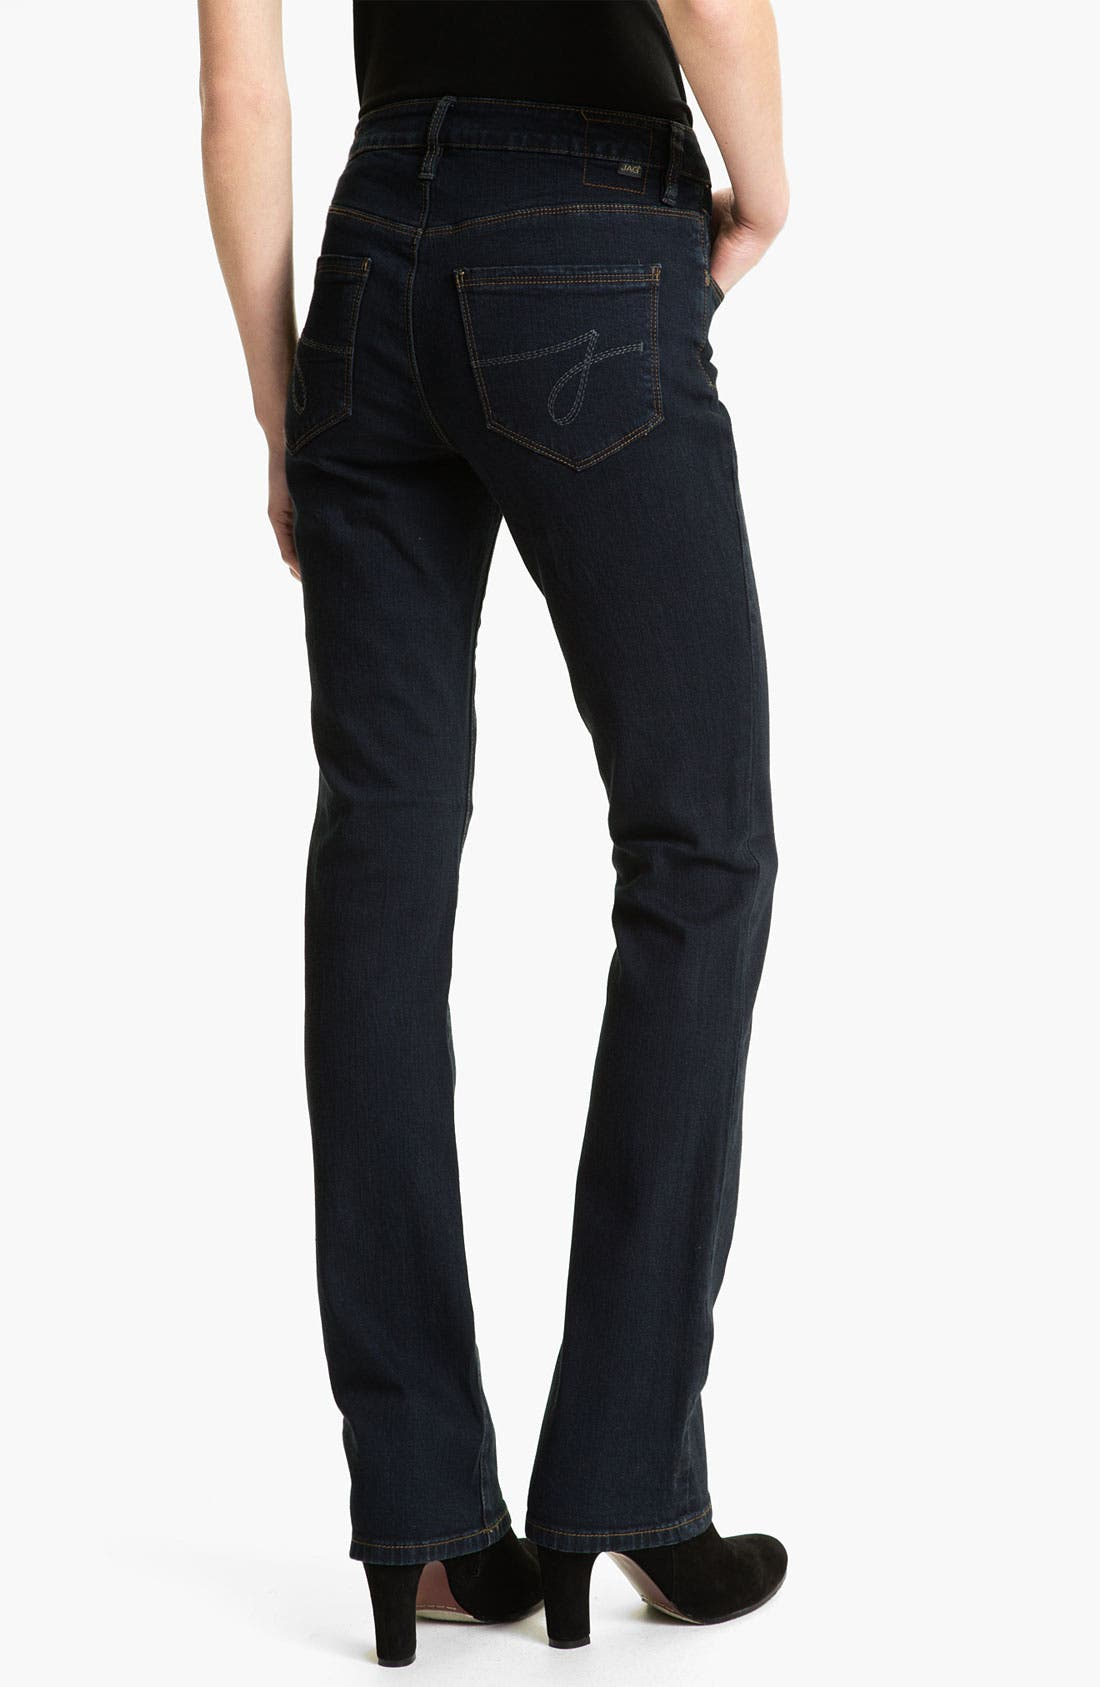 Alternate Image 2  - Jag Jeans 'Foster' Narrow Bootcut Jeans (Petite)